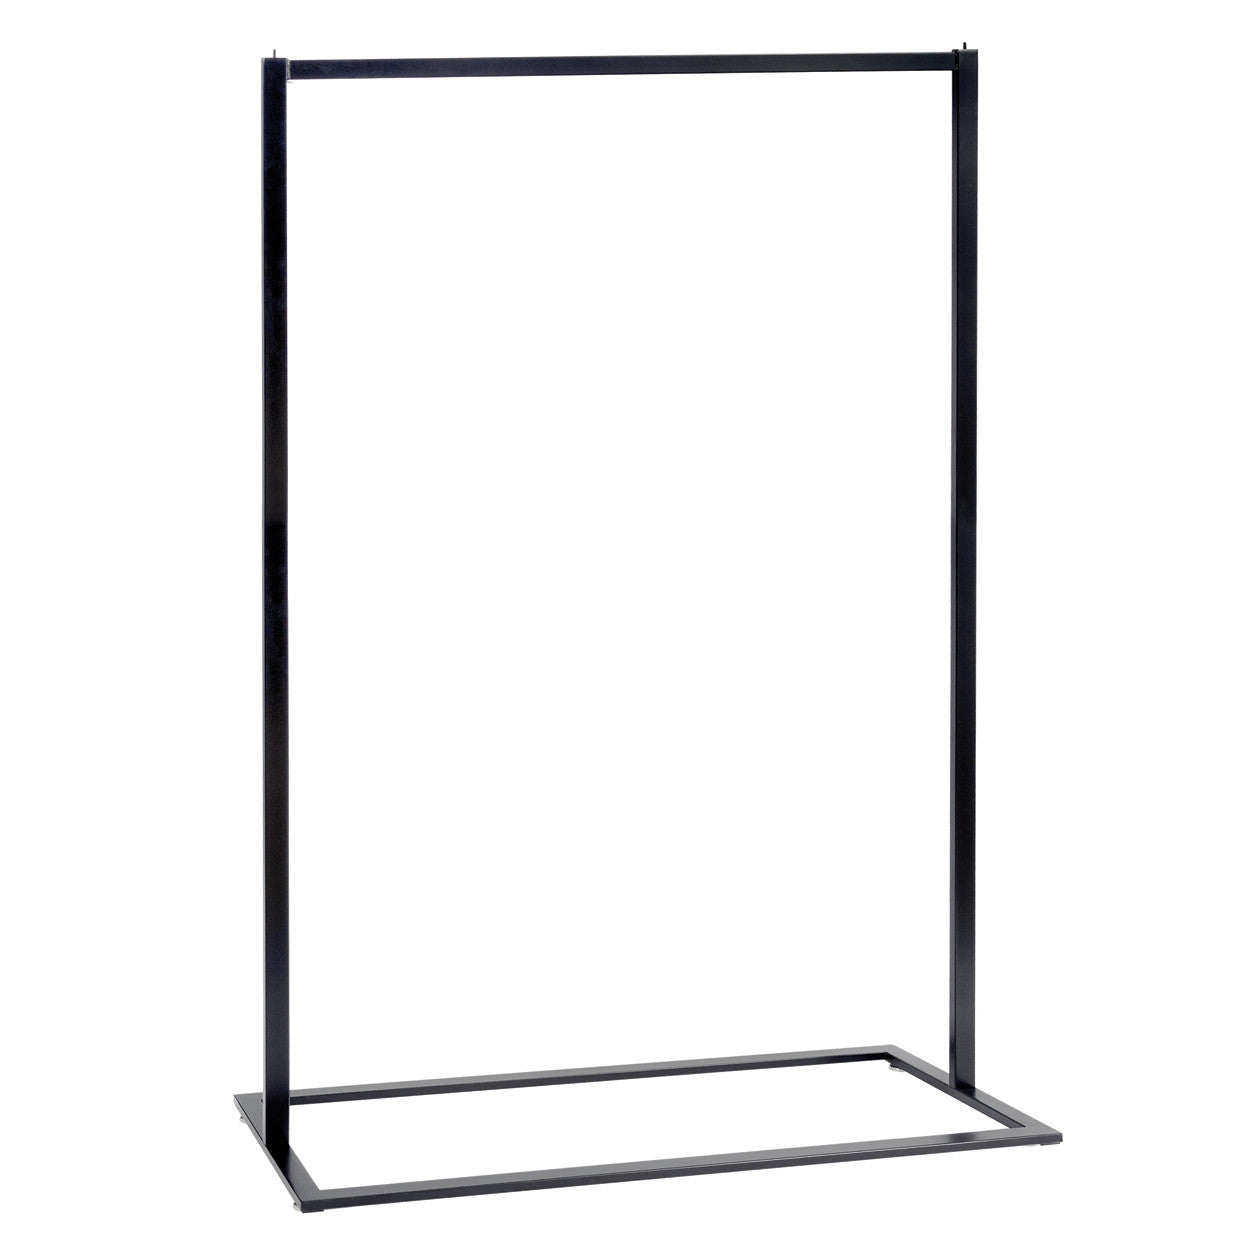 Style clothes rack single rail  1200 W x 1650 H x 457 mm D